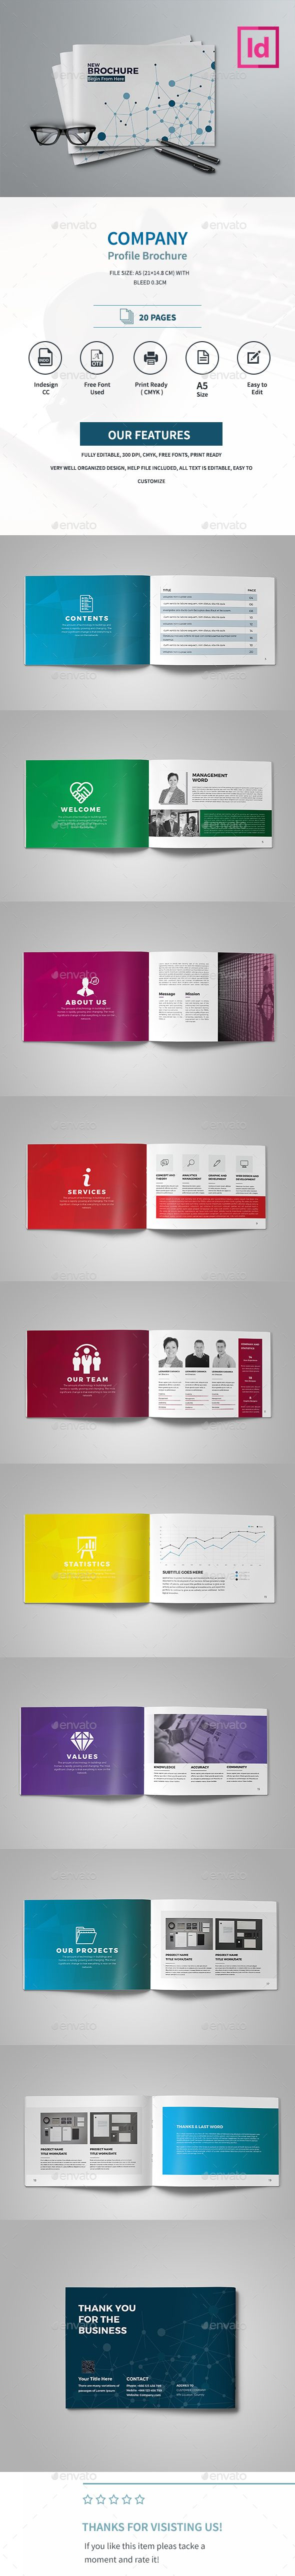 Company Profile Brochure Template InDesign INDD. Download here: https://graphicriver.net/item/company-profile-brochure/17391485?ref=ksioks